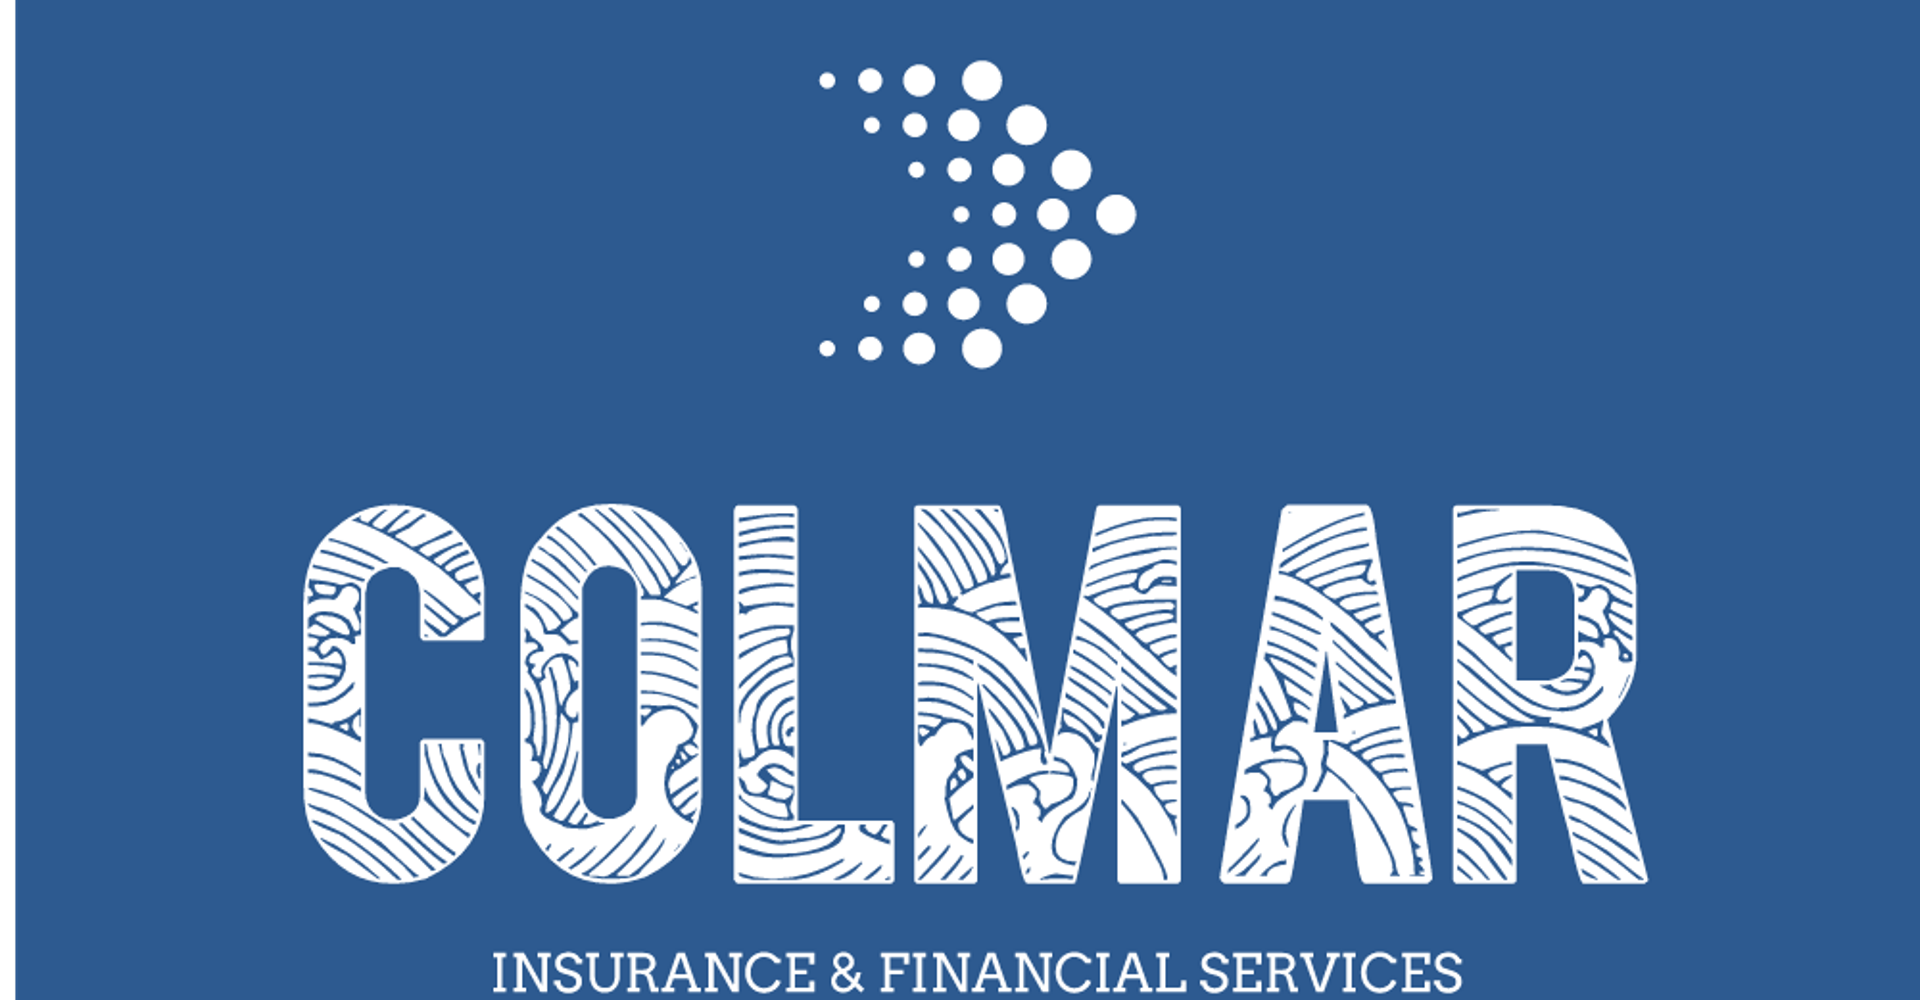 Colmar Insurance and Financial Services